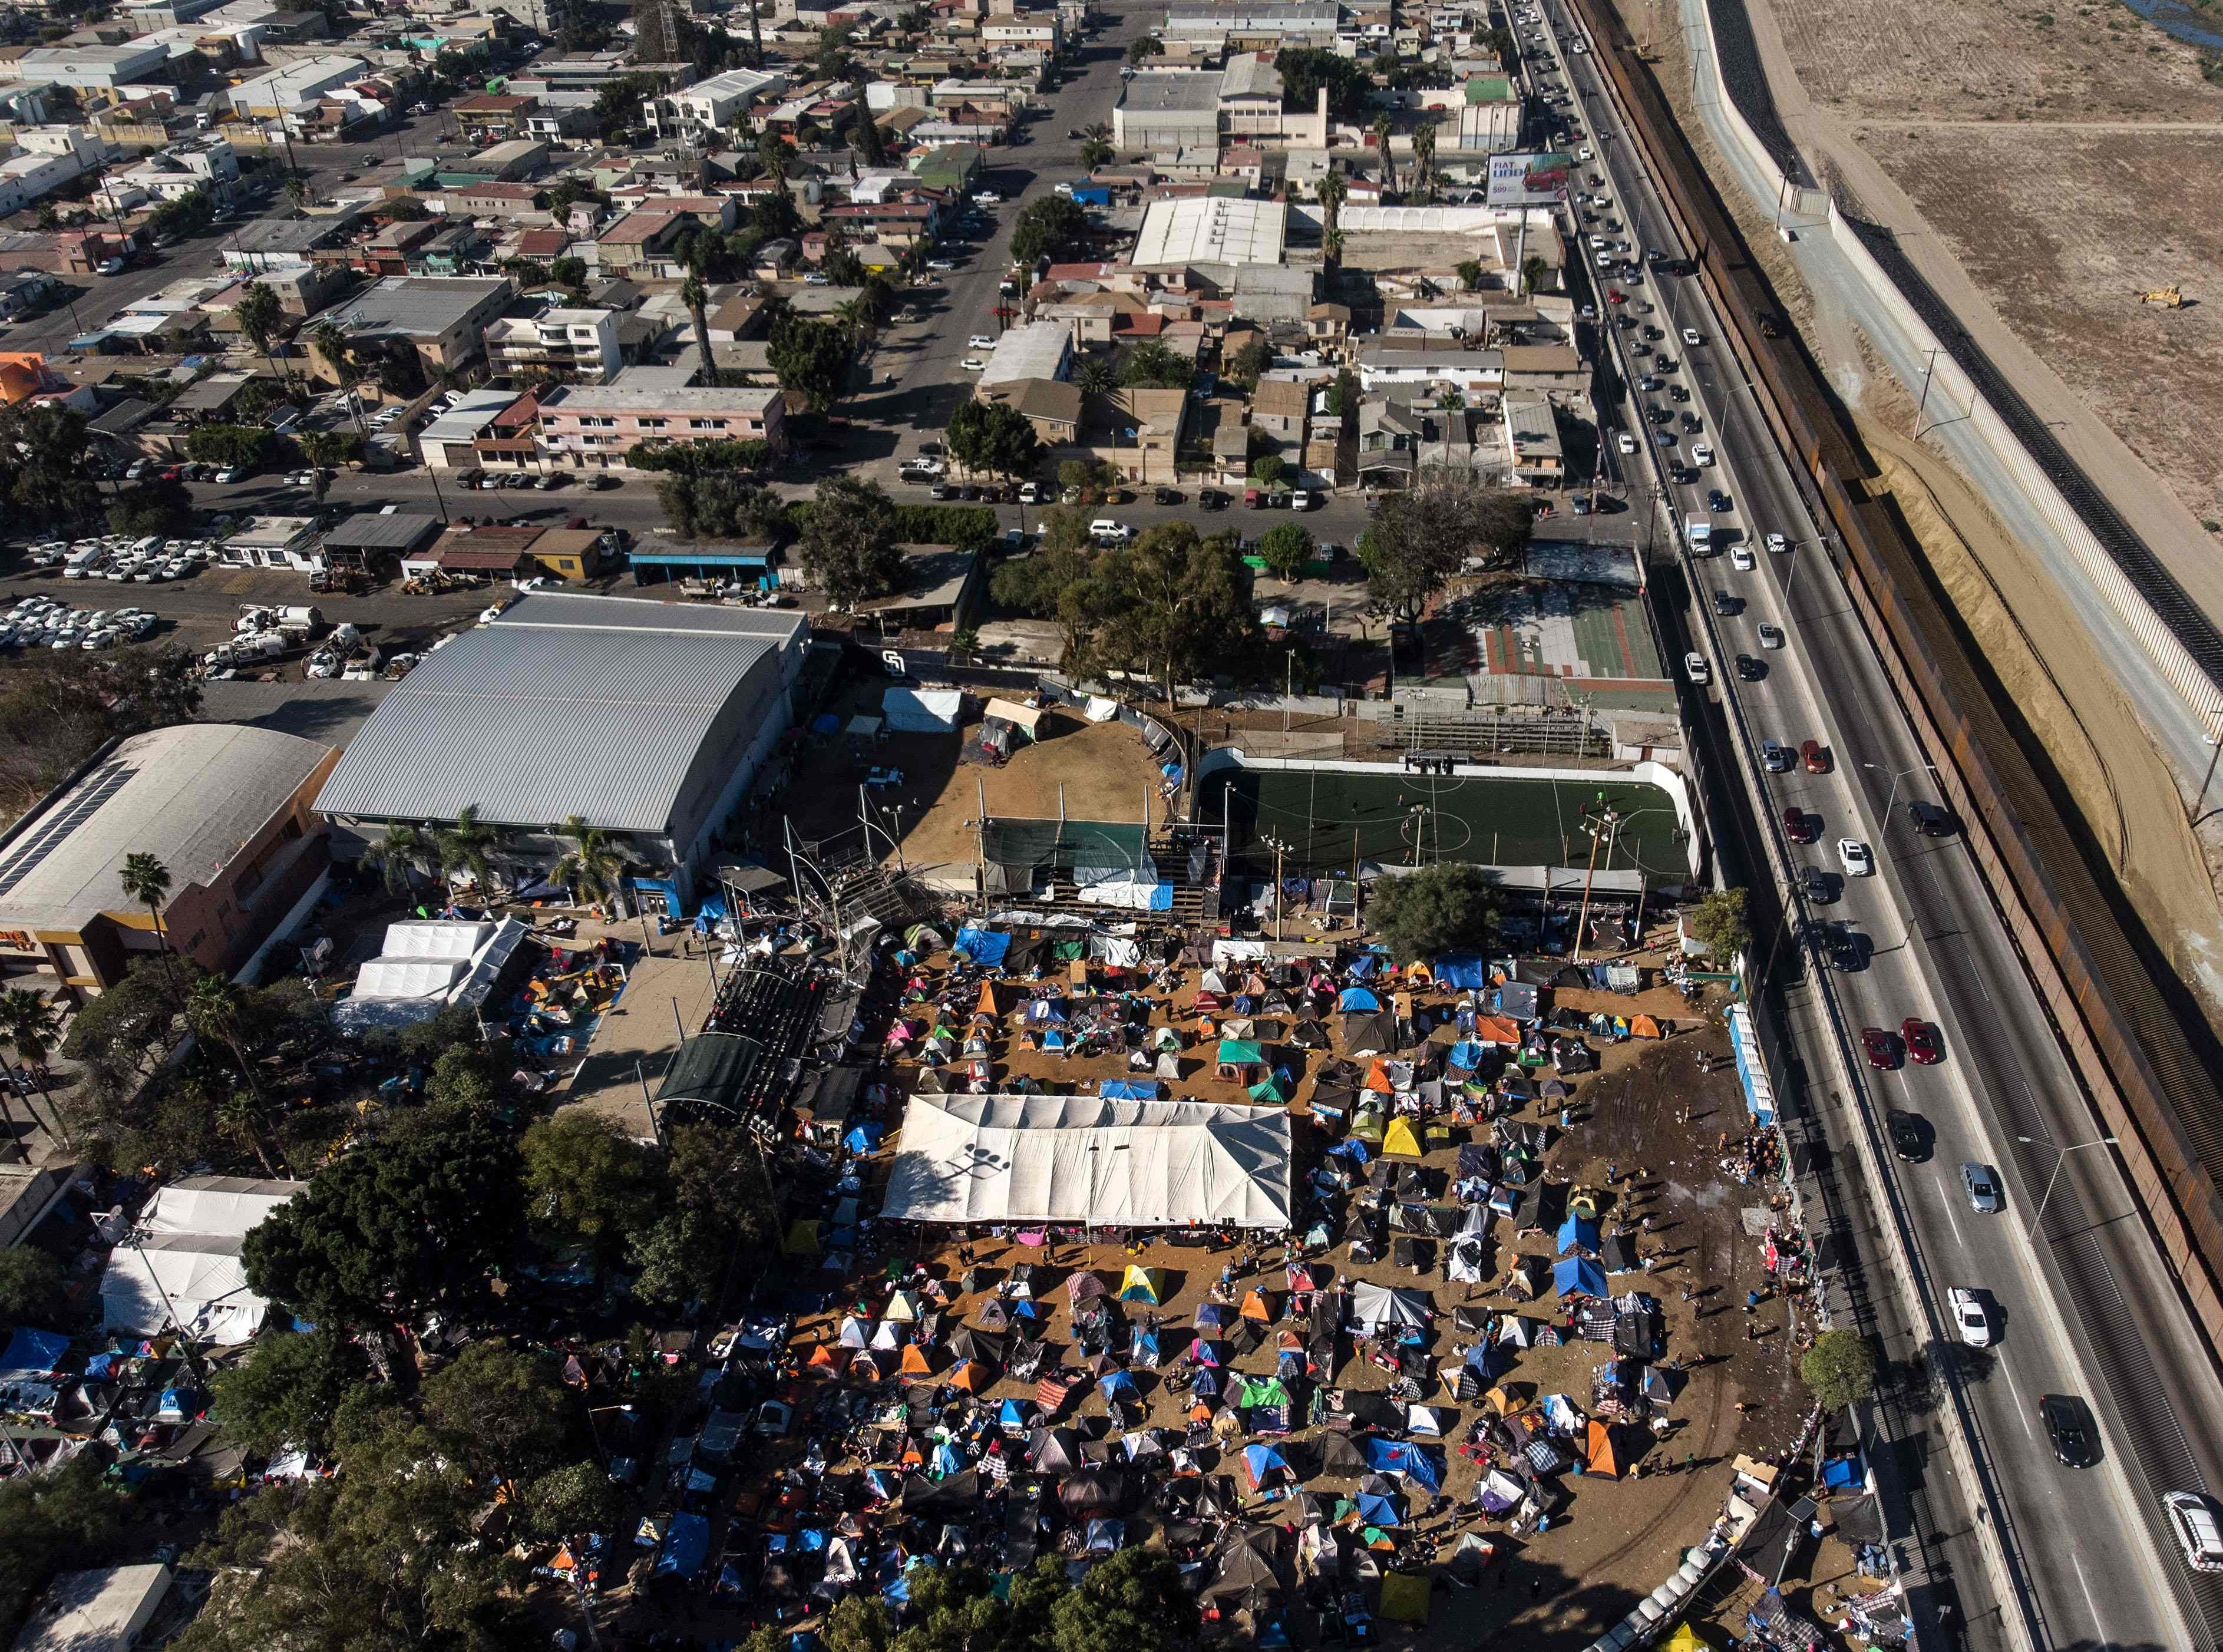 This is a temporary shelter where Central American migrants -- mostly from Honduras -- are staying in Tijuana, Baja California State, Mexico, on November 27, 2018. After a trek of more than a month from Honduras, nearly 5,000 migrants -- including women and children -- are now in Tijuana living in a makeshift shelter.